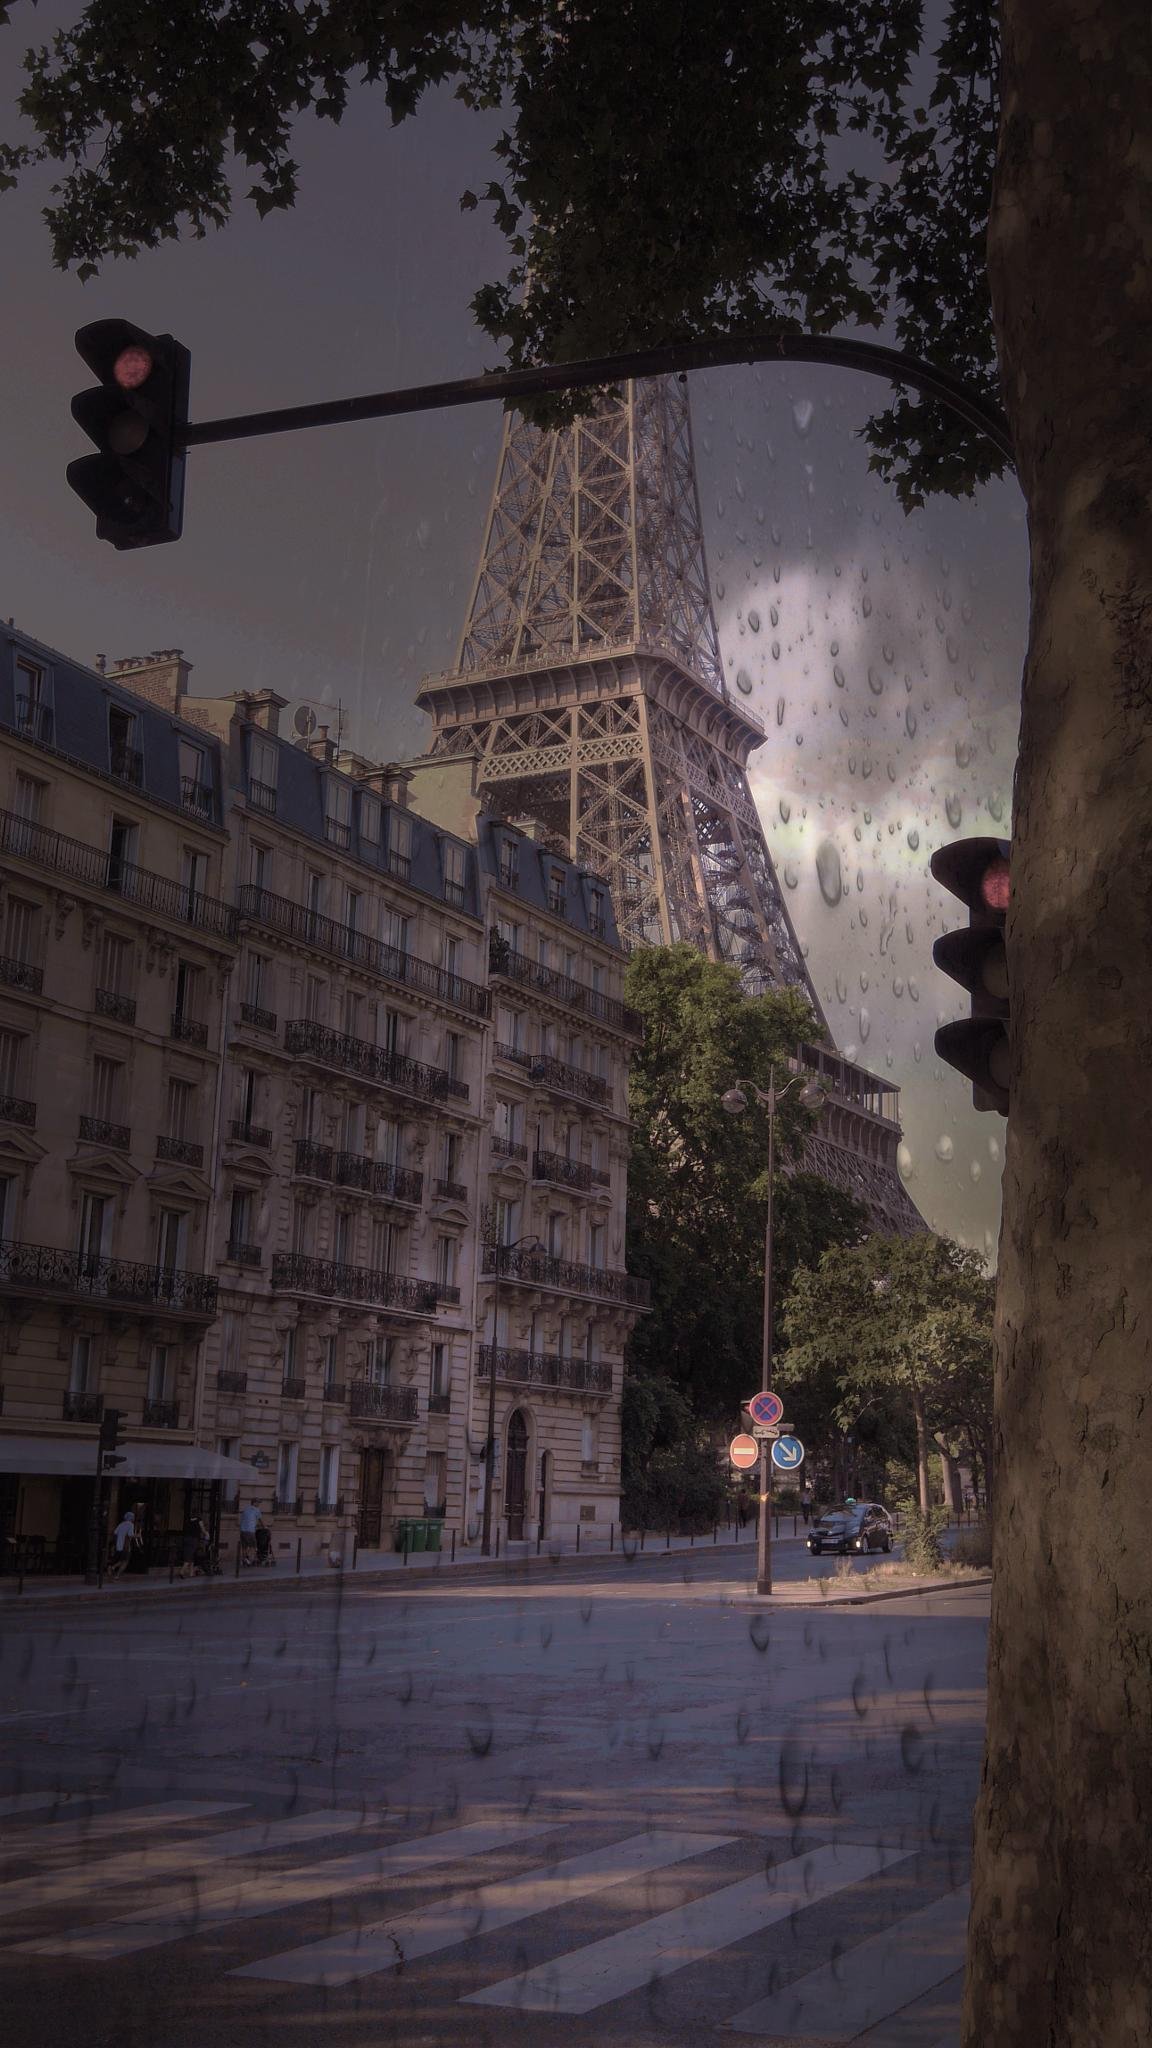 Somewhere in Paris by Jean No